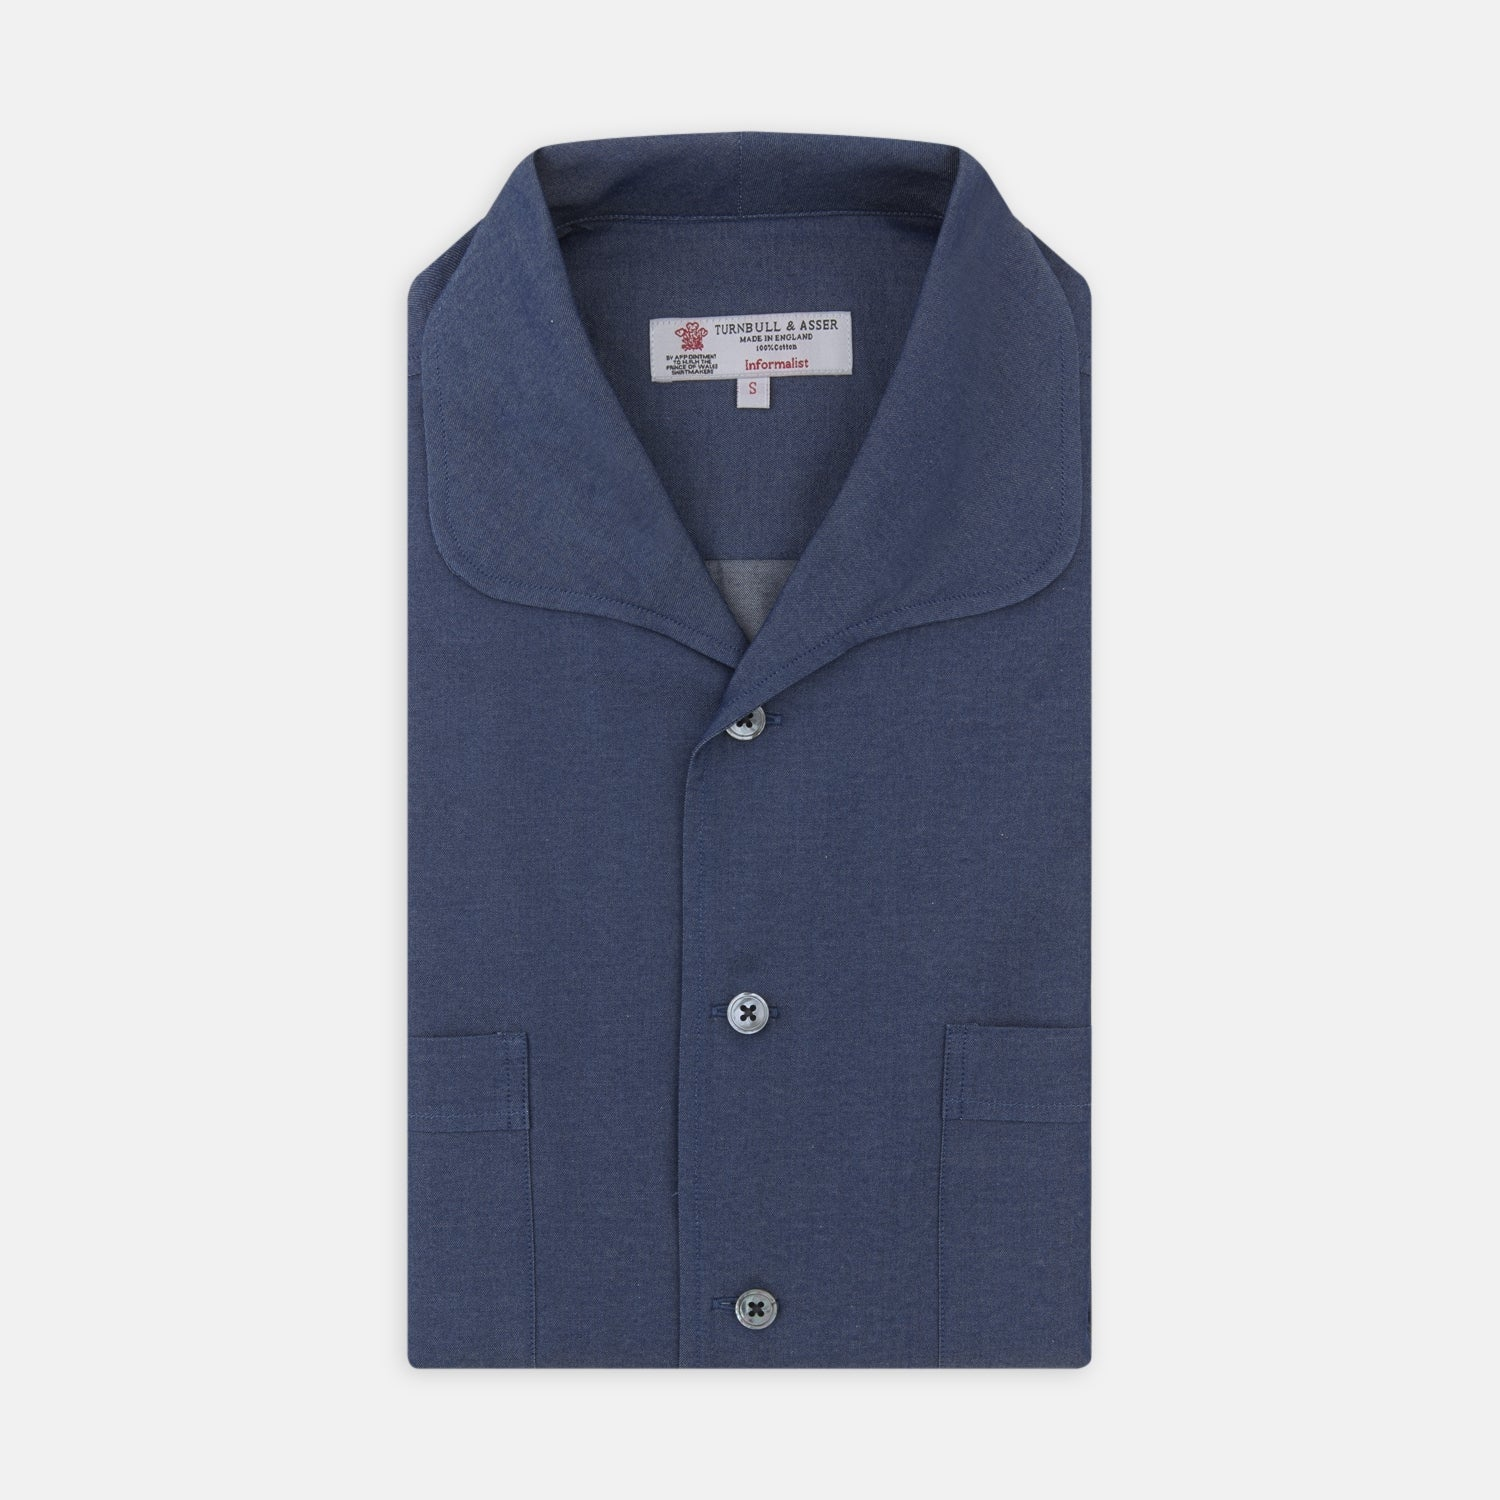 Rockland Indigo Cotton Shirt with Resort Collar and Short Sleeves